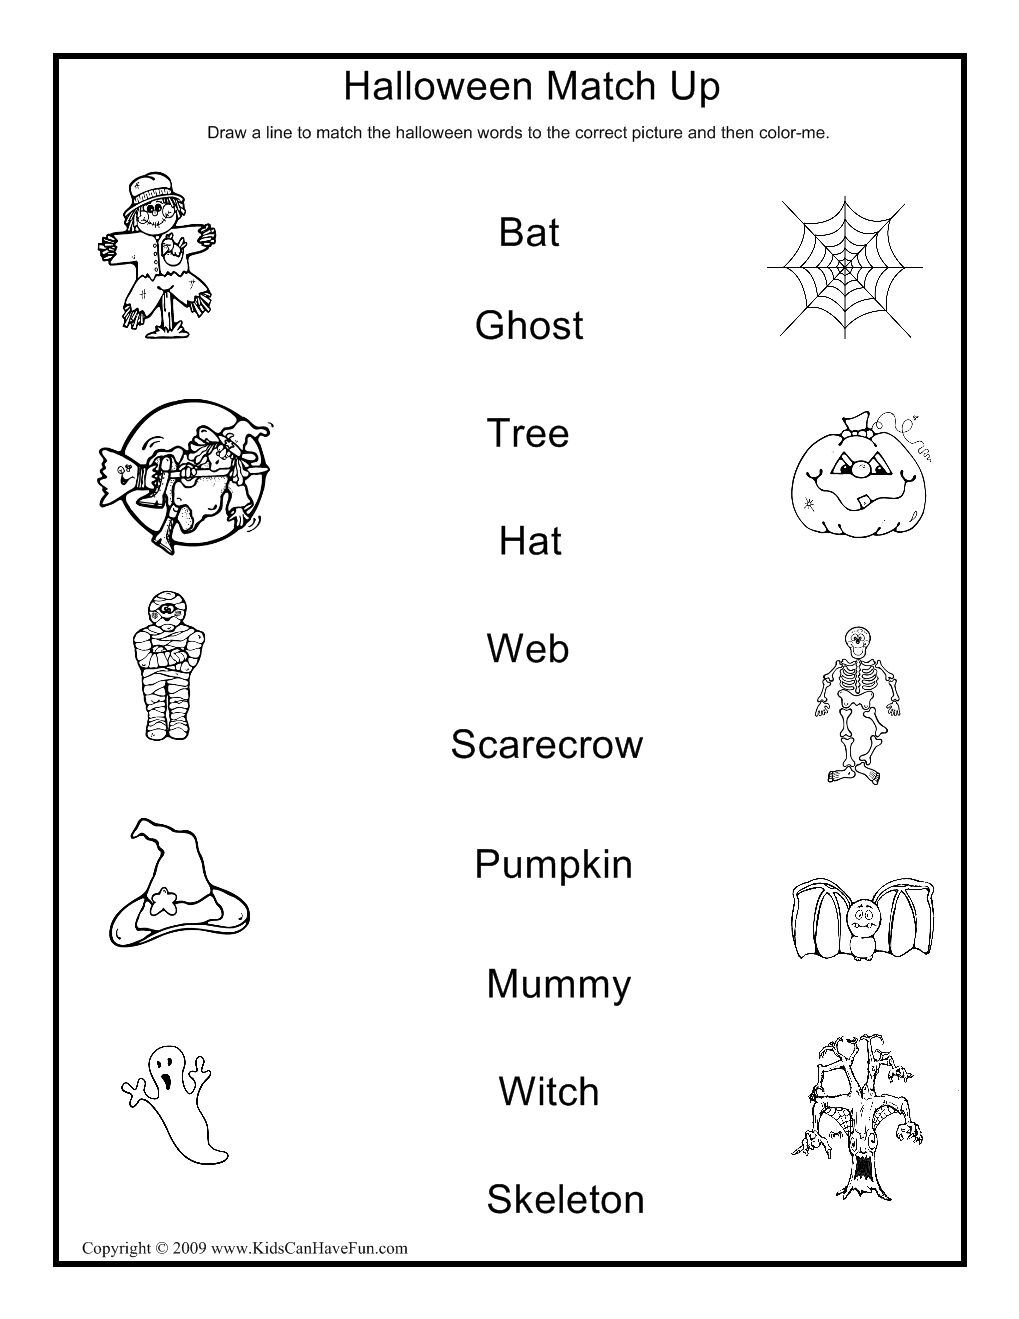 Halloween Match Up Activity | English Worksheets For Kids